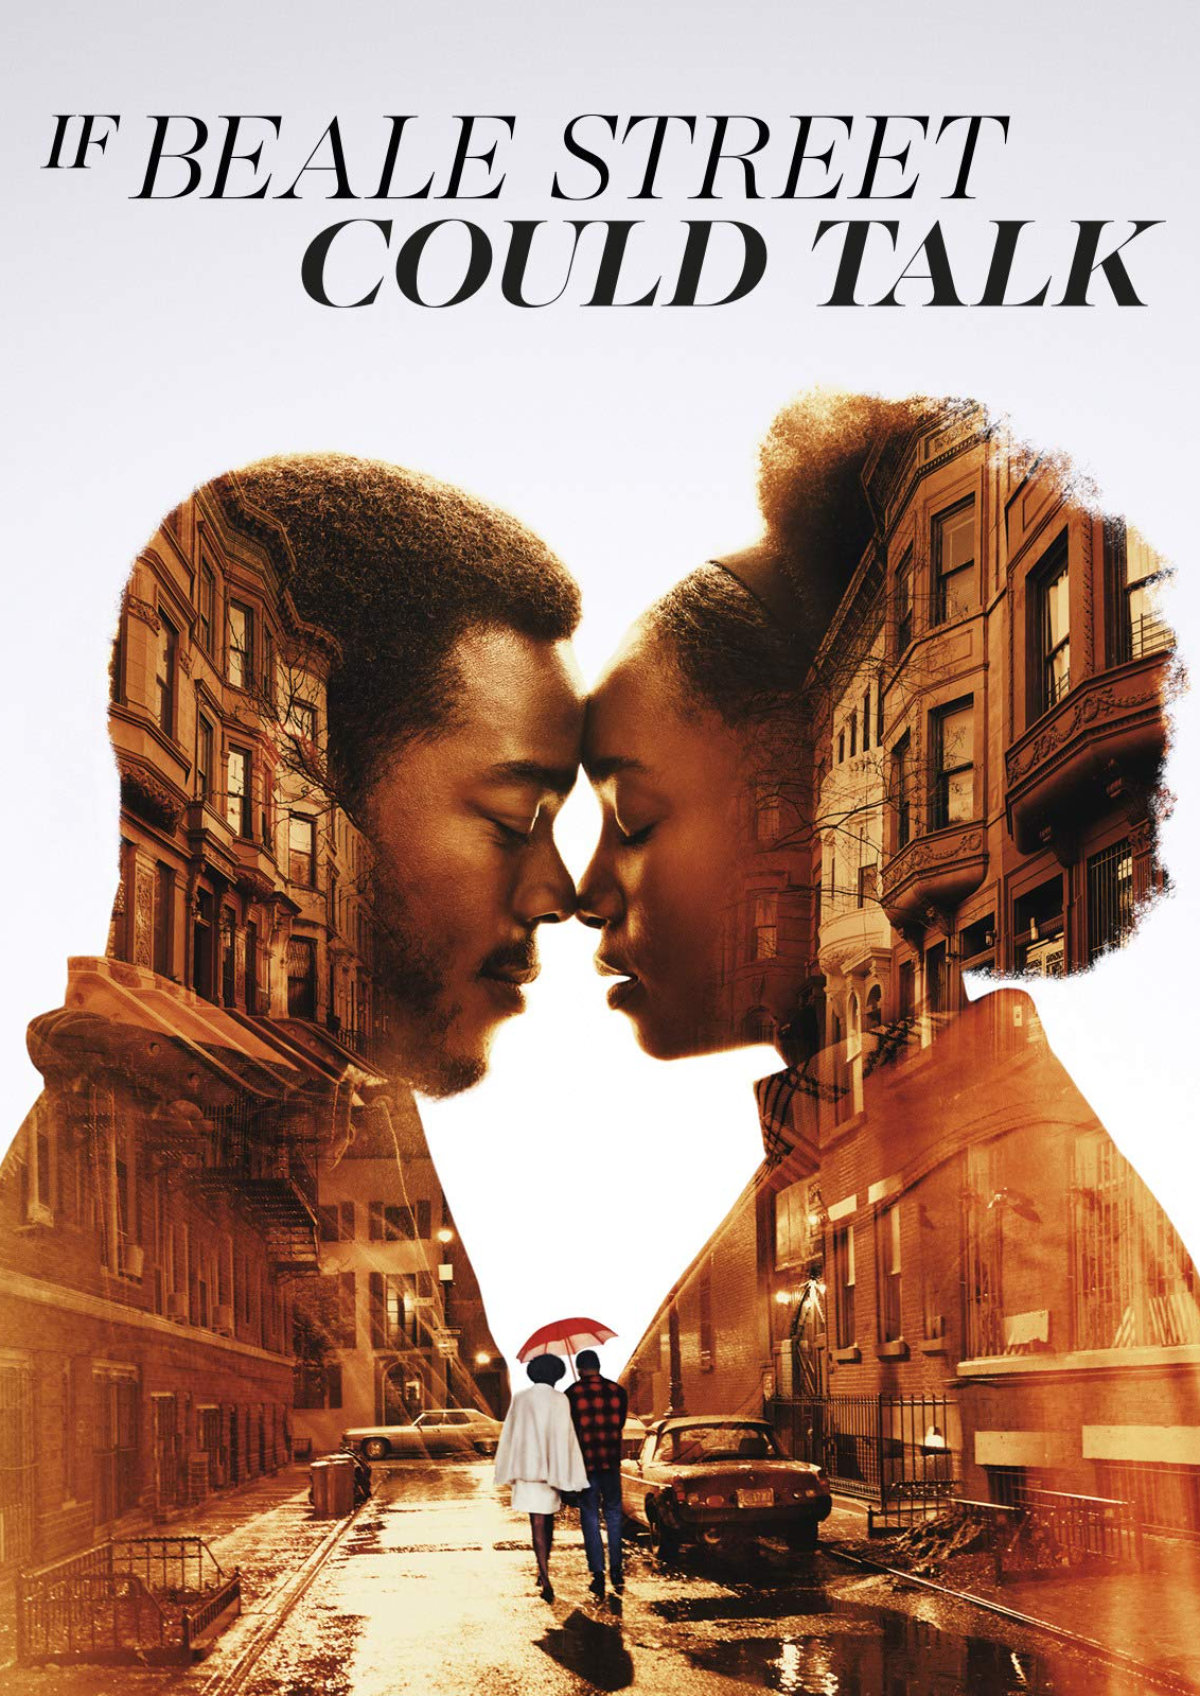 'If Beale Street Could Talk' movie poster